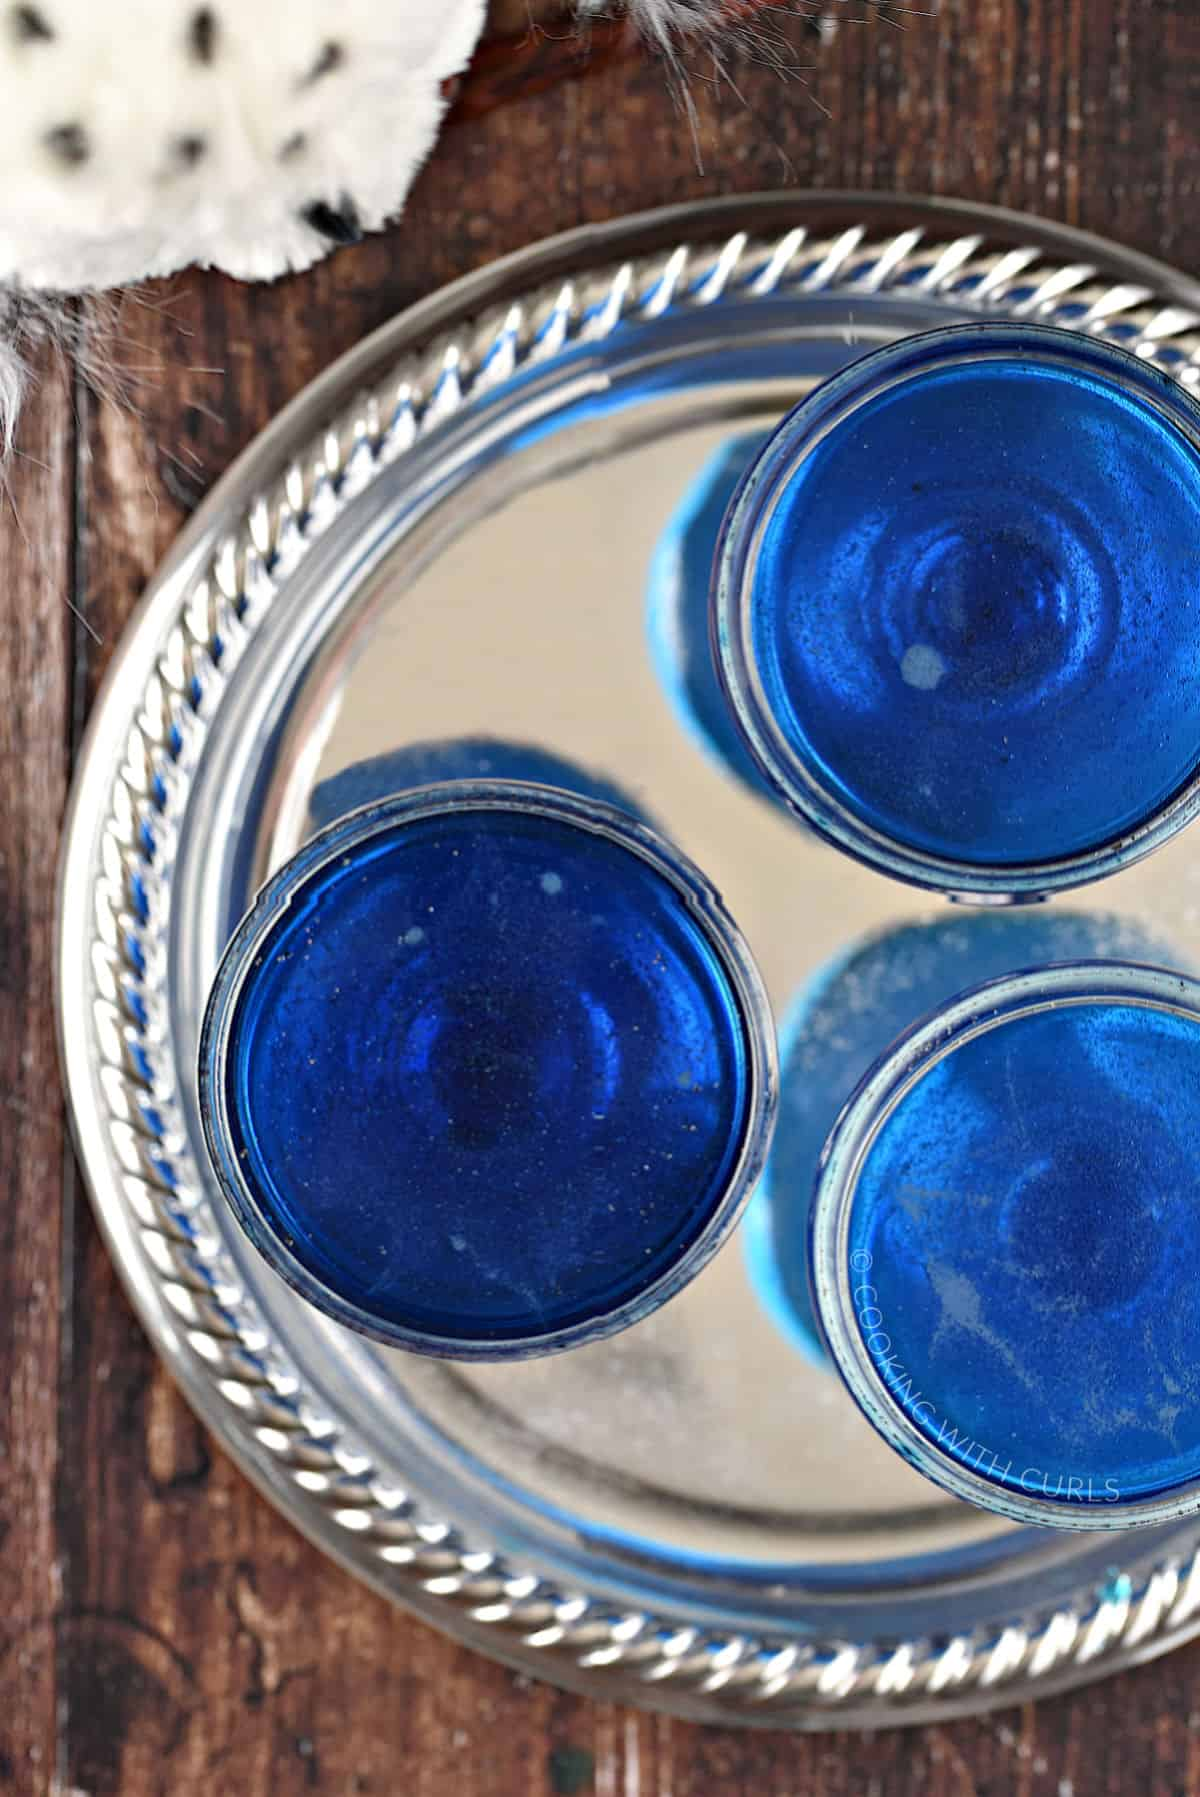 Three blue drinks in coupe style glasses on a silver tray.